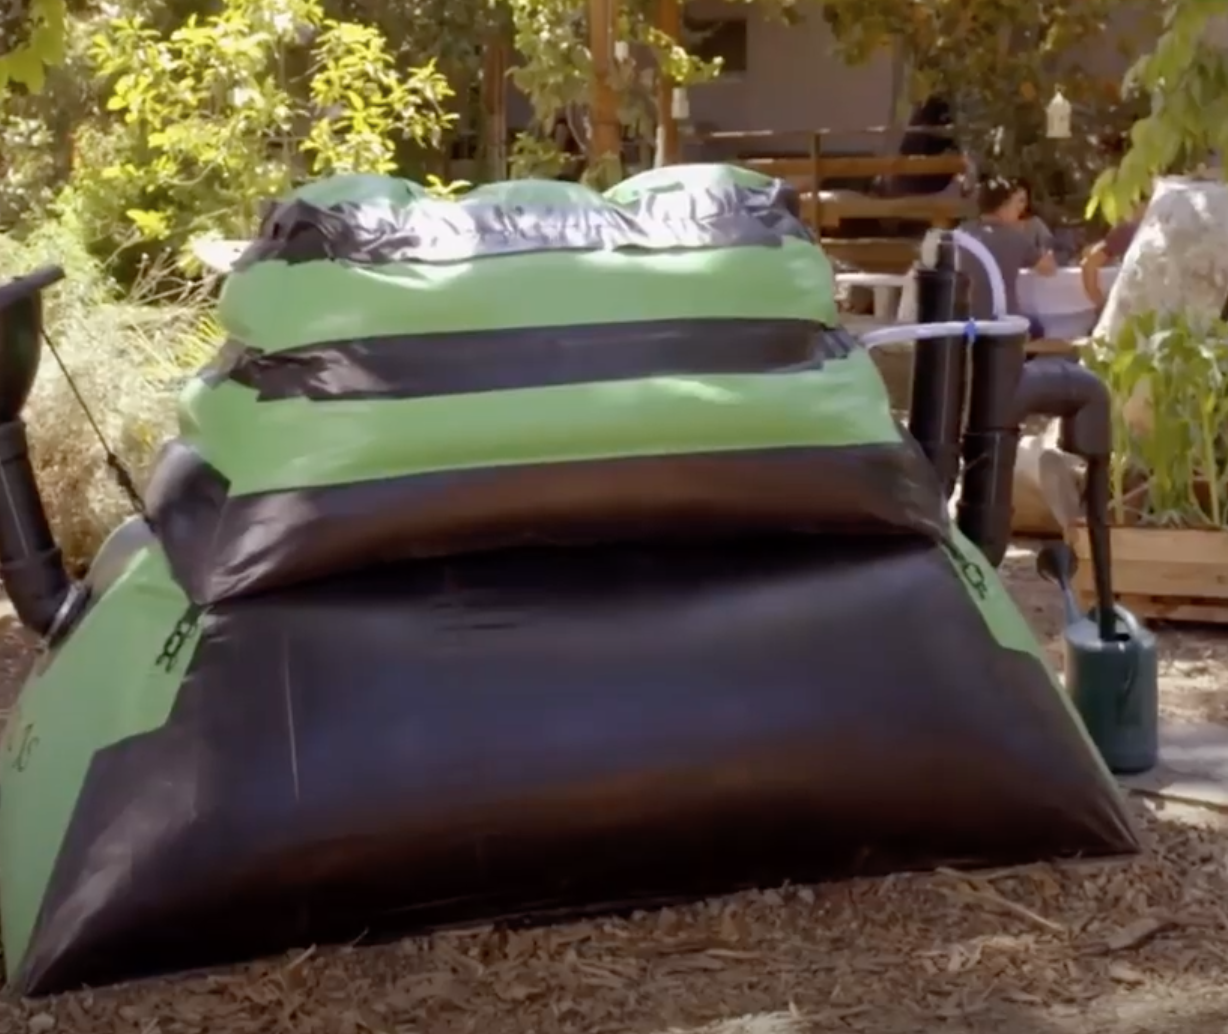 Homebiogas - backyard appliance that turns waste into cooking gas